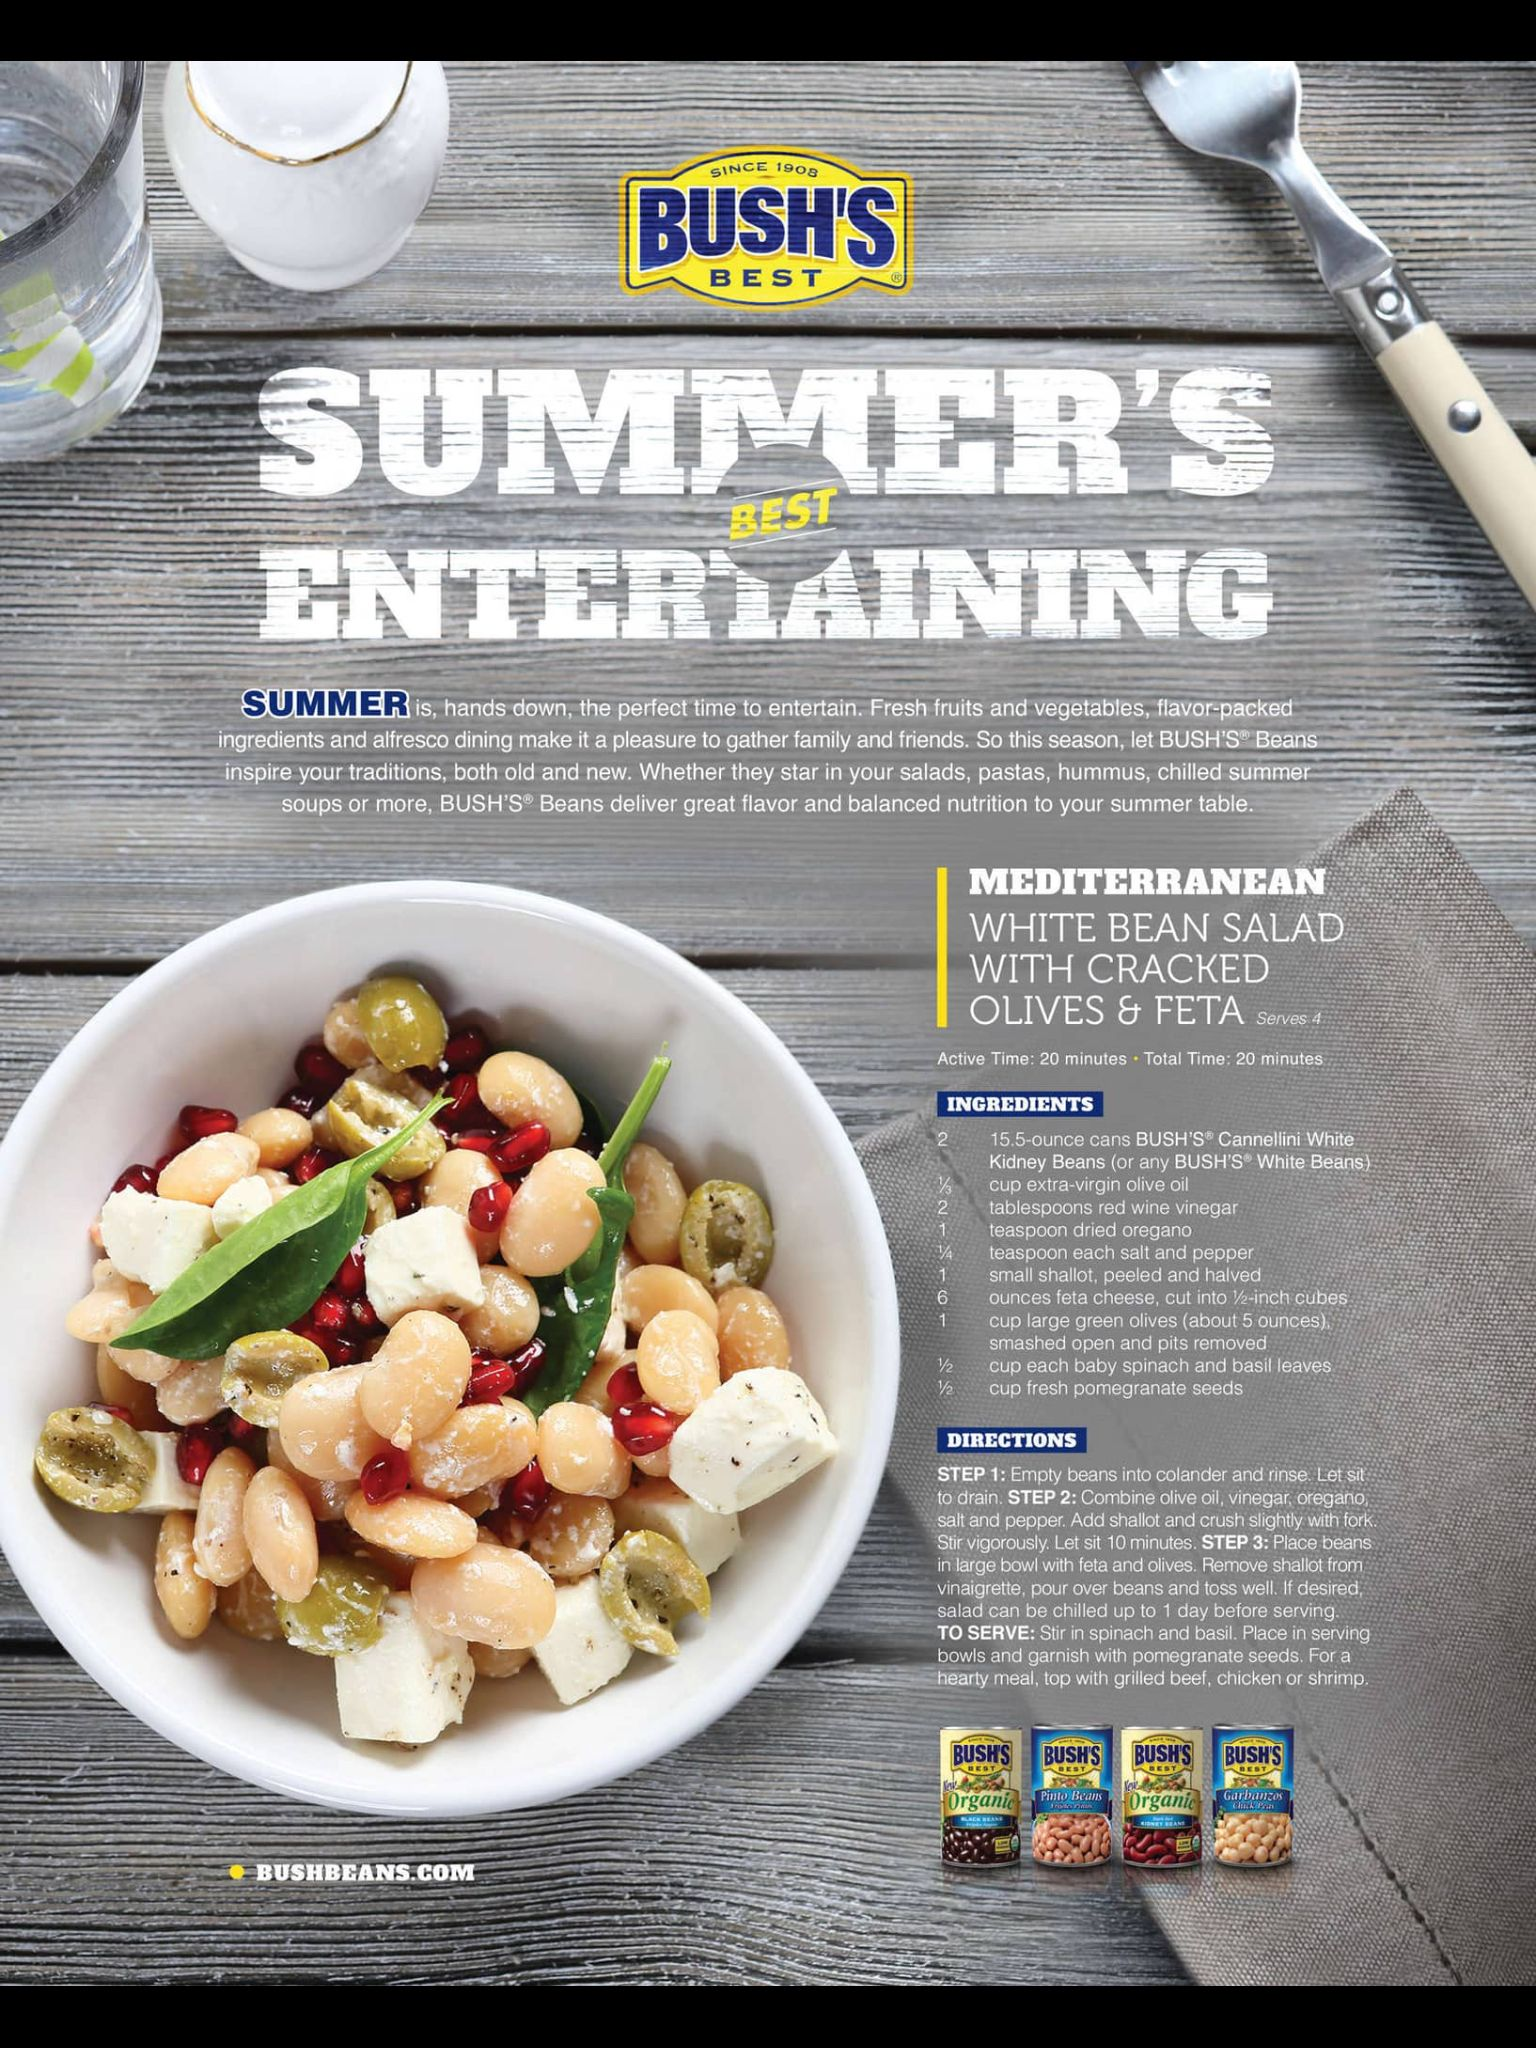 Adfnm060117bushbeans010002 from food network magazine june adfnm060117bushbeans010002 from food network magazine june 2017 read it on the texture forumfinder Gallery